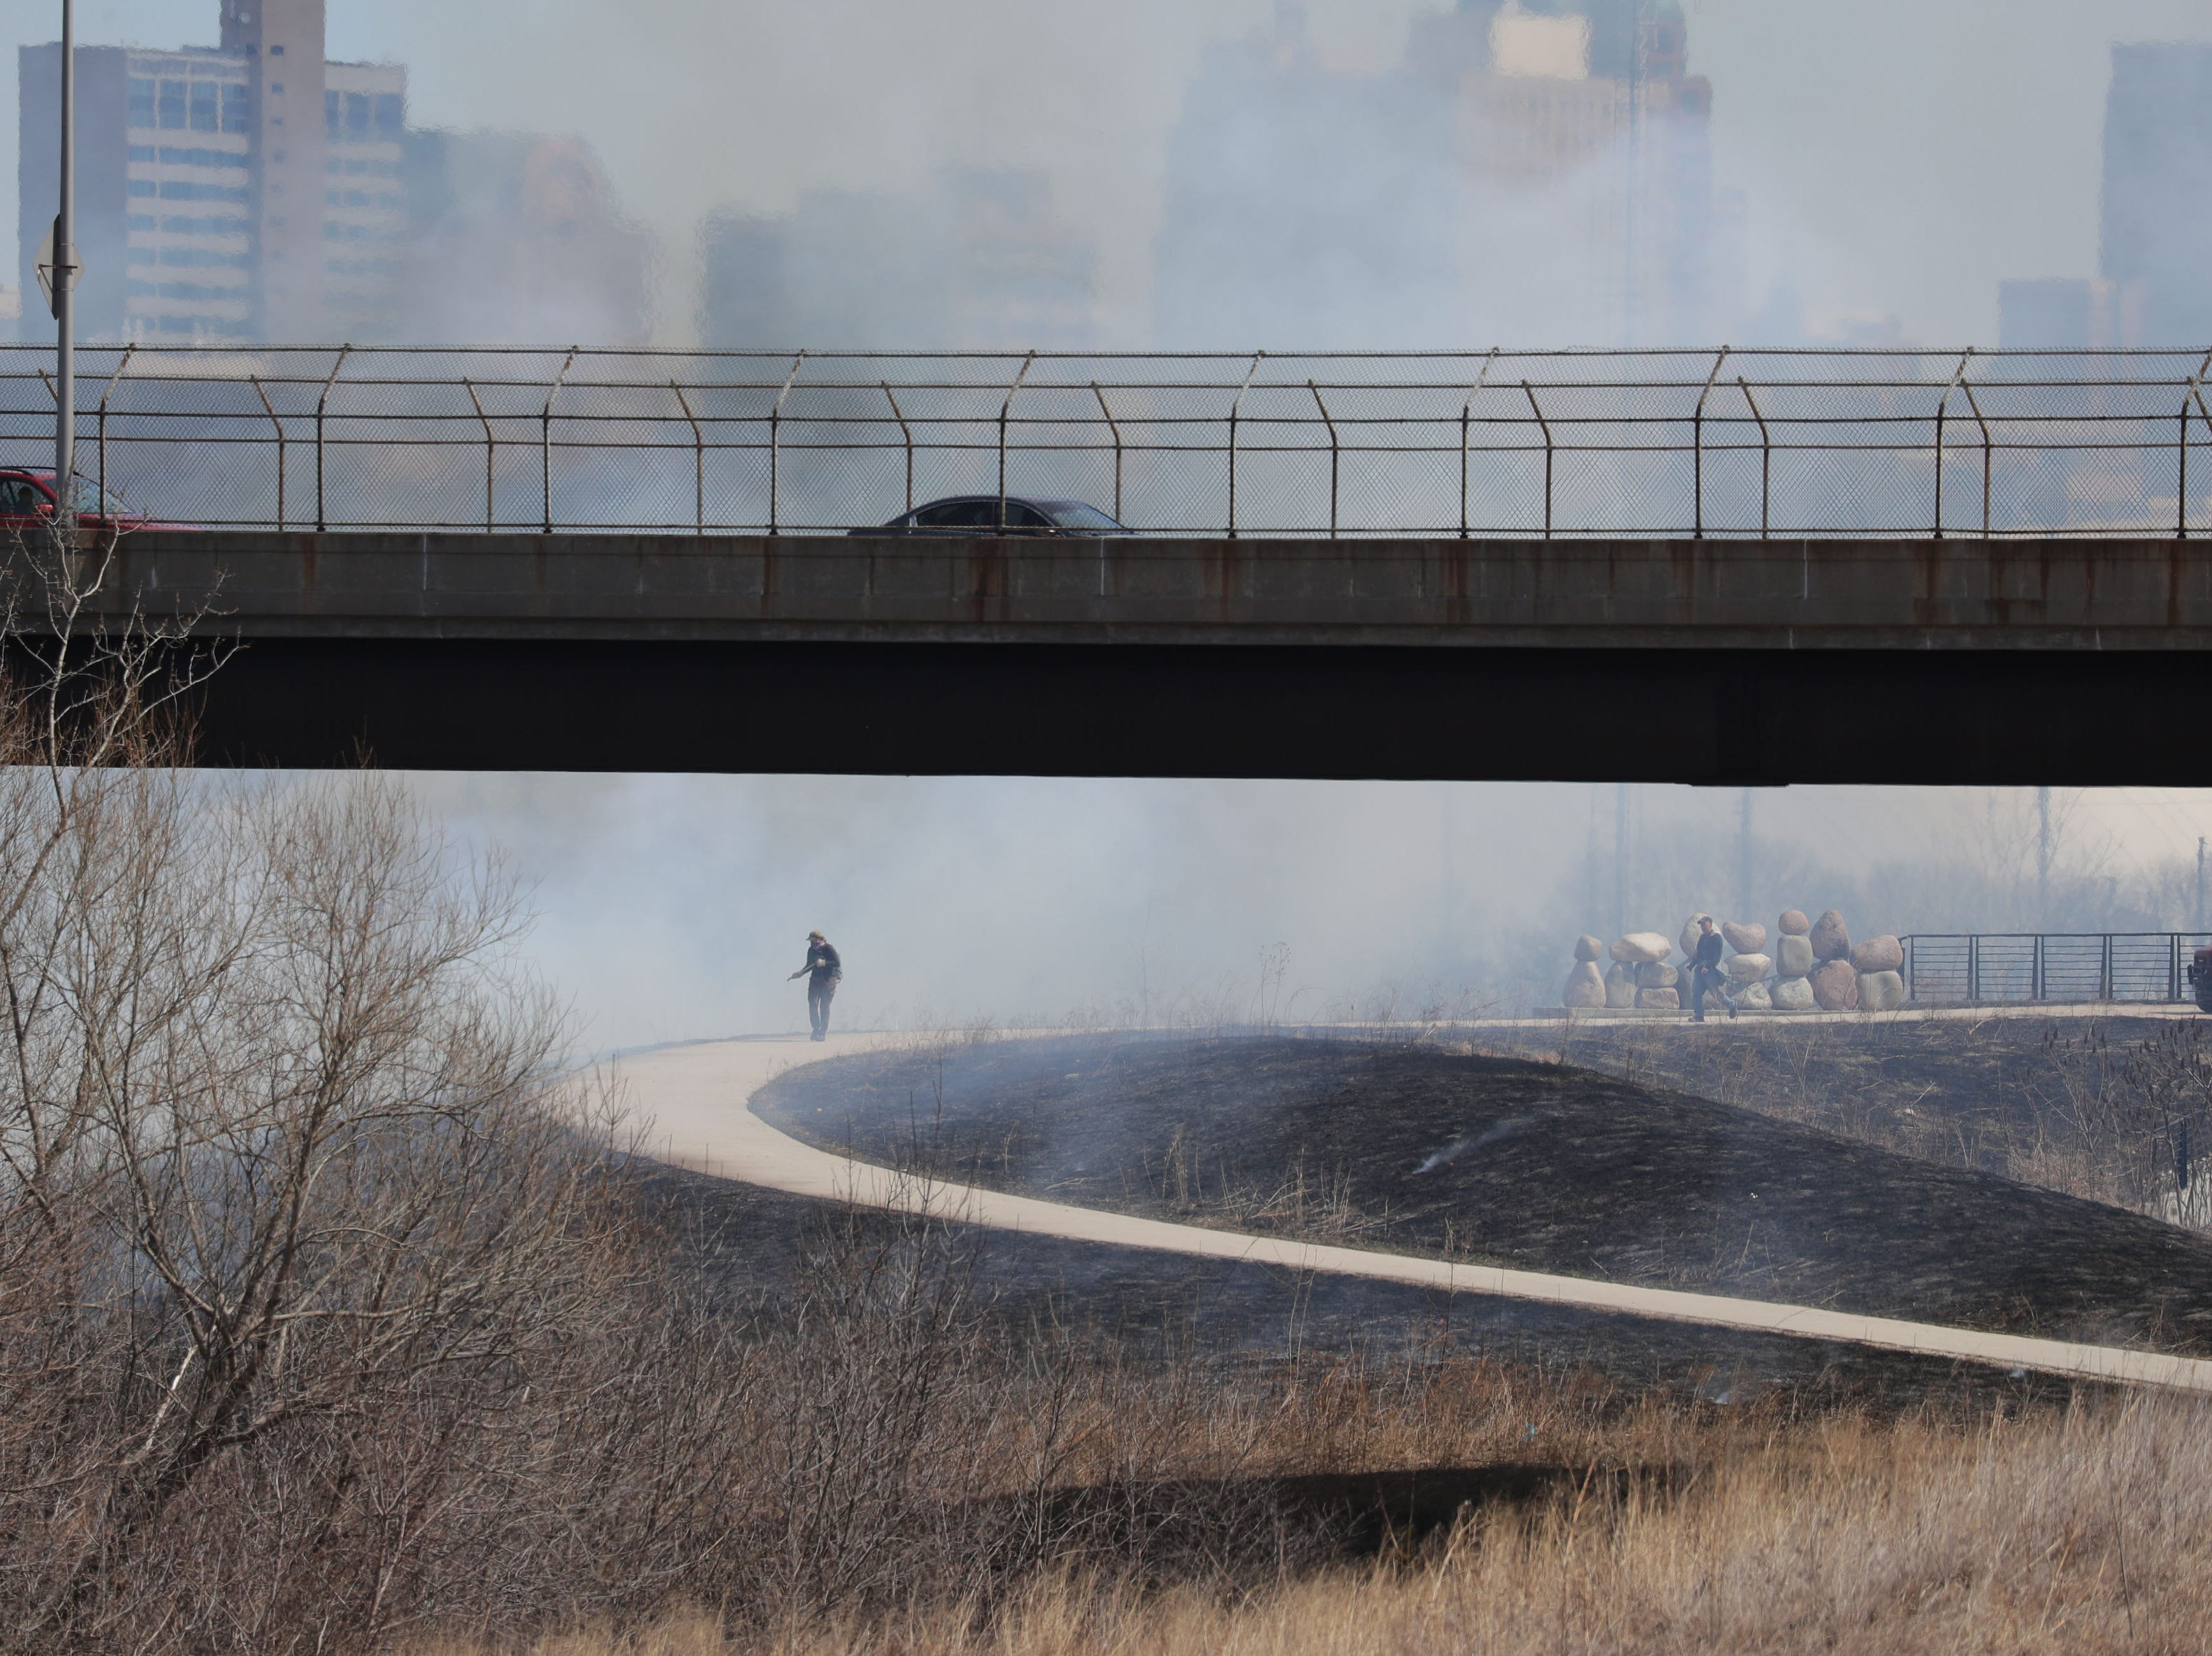 Smoke rises from the controlled burn.